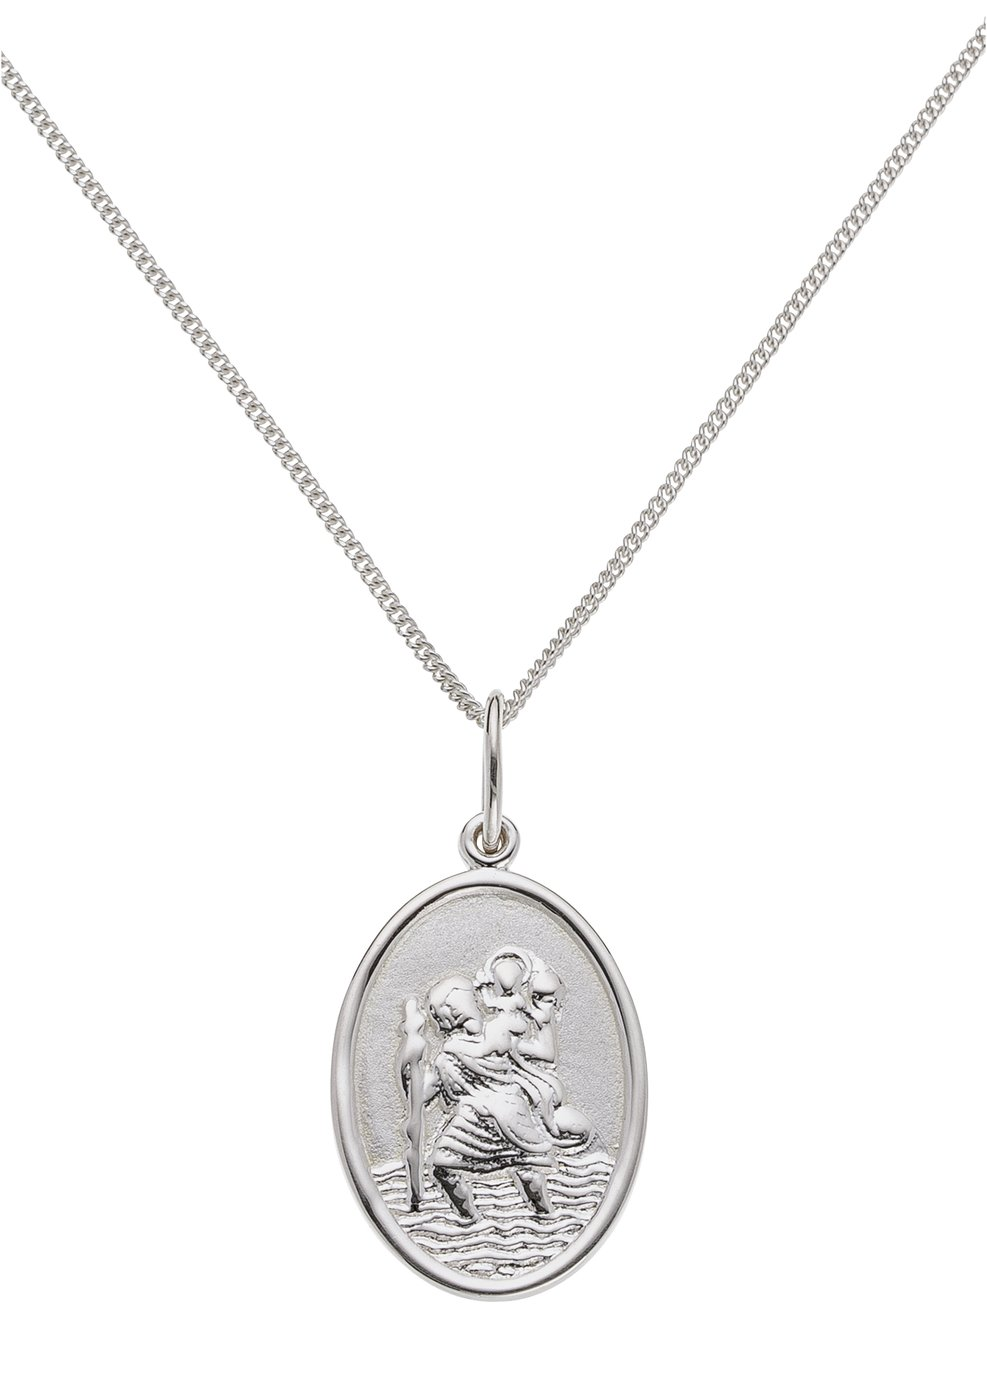 Revere Sterling Silver Oval St. Christopher Pendant